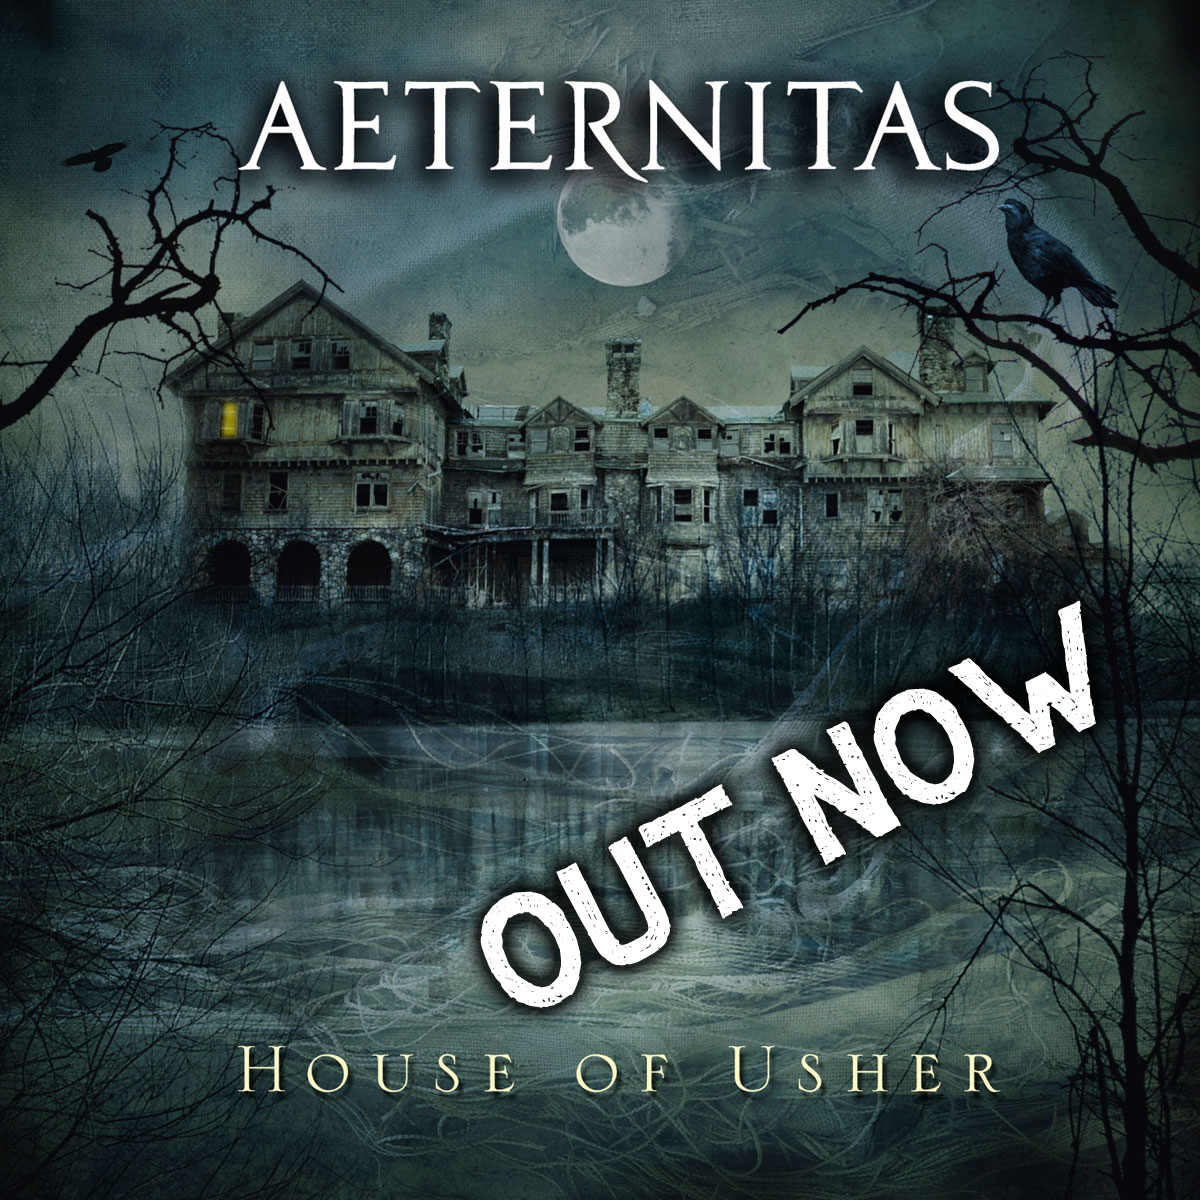 aeternitas_usher_final2016_1200_outnow